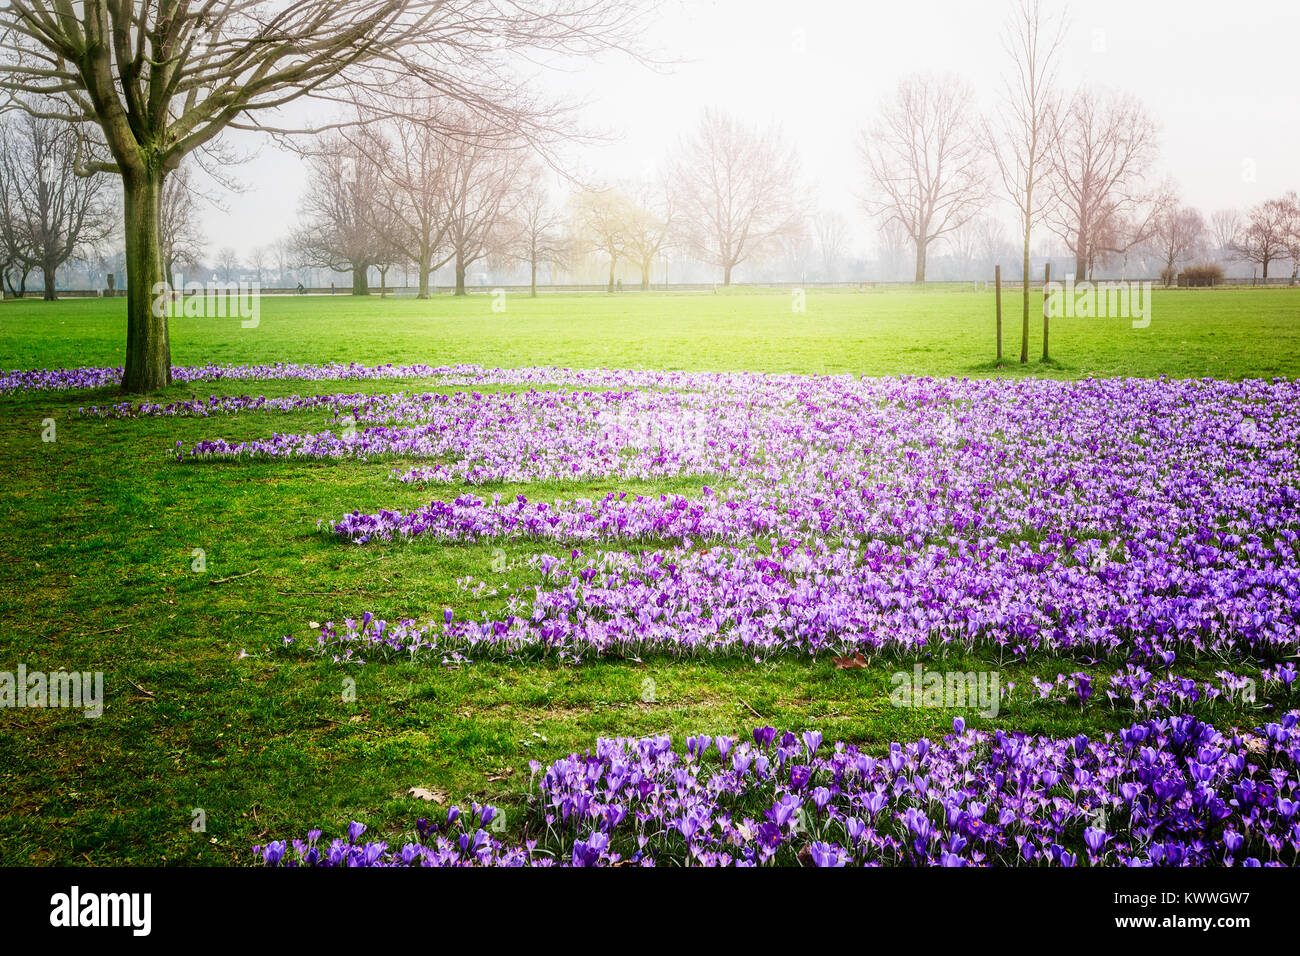 Spring Green Park City Park With Blooming Crocus Flowers Fresh